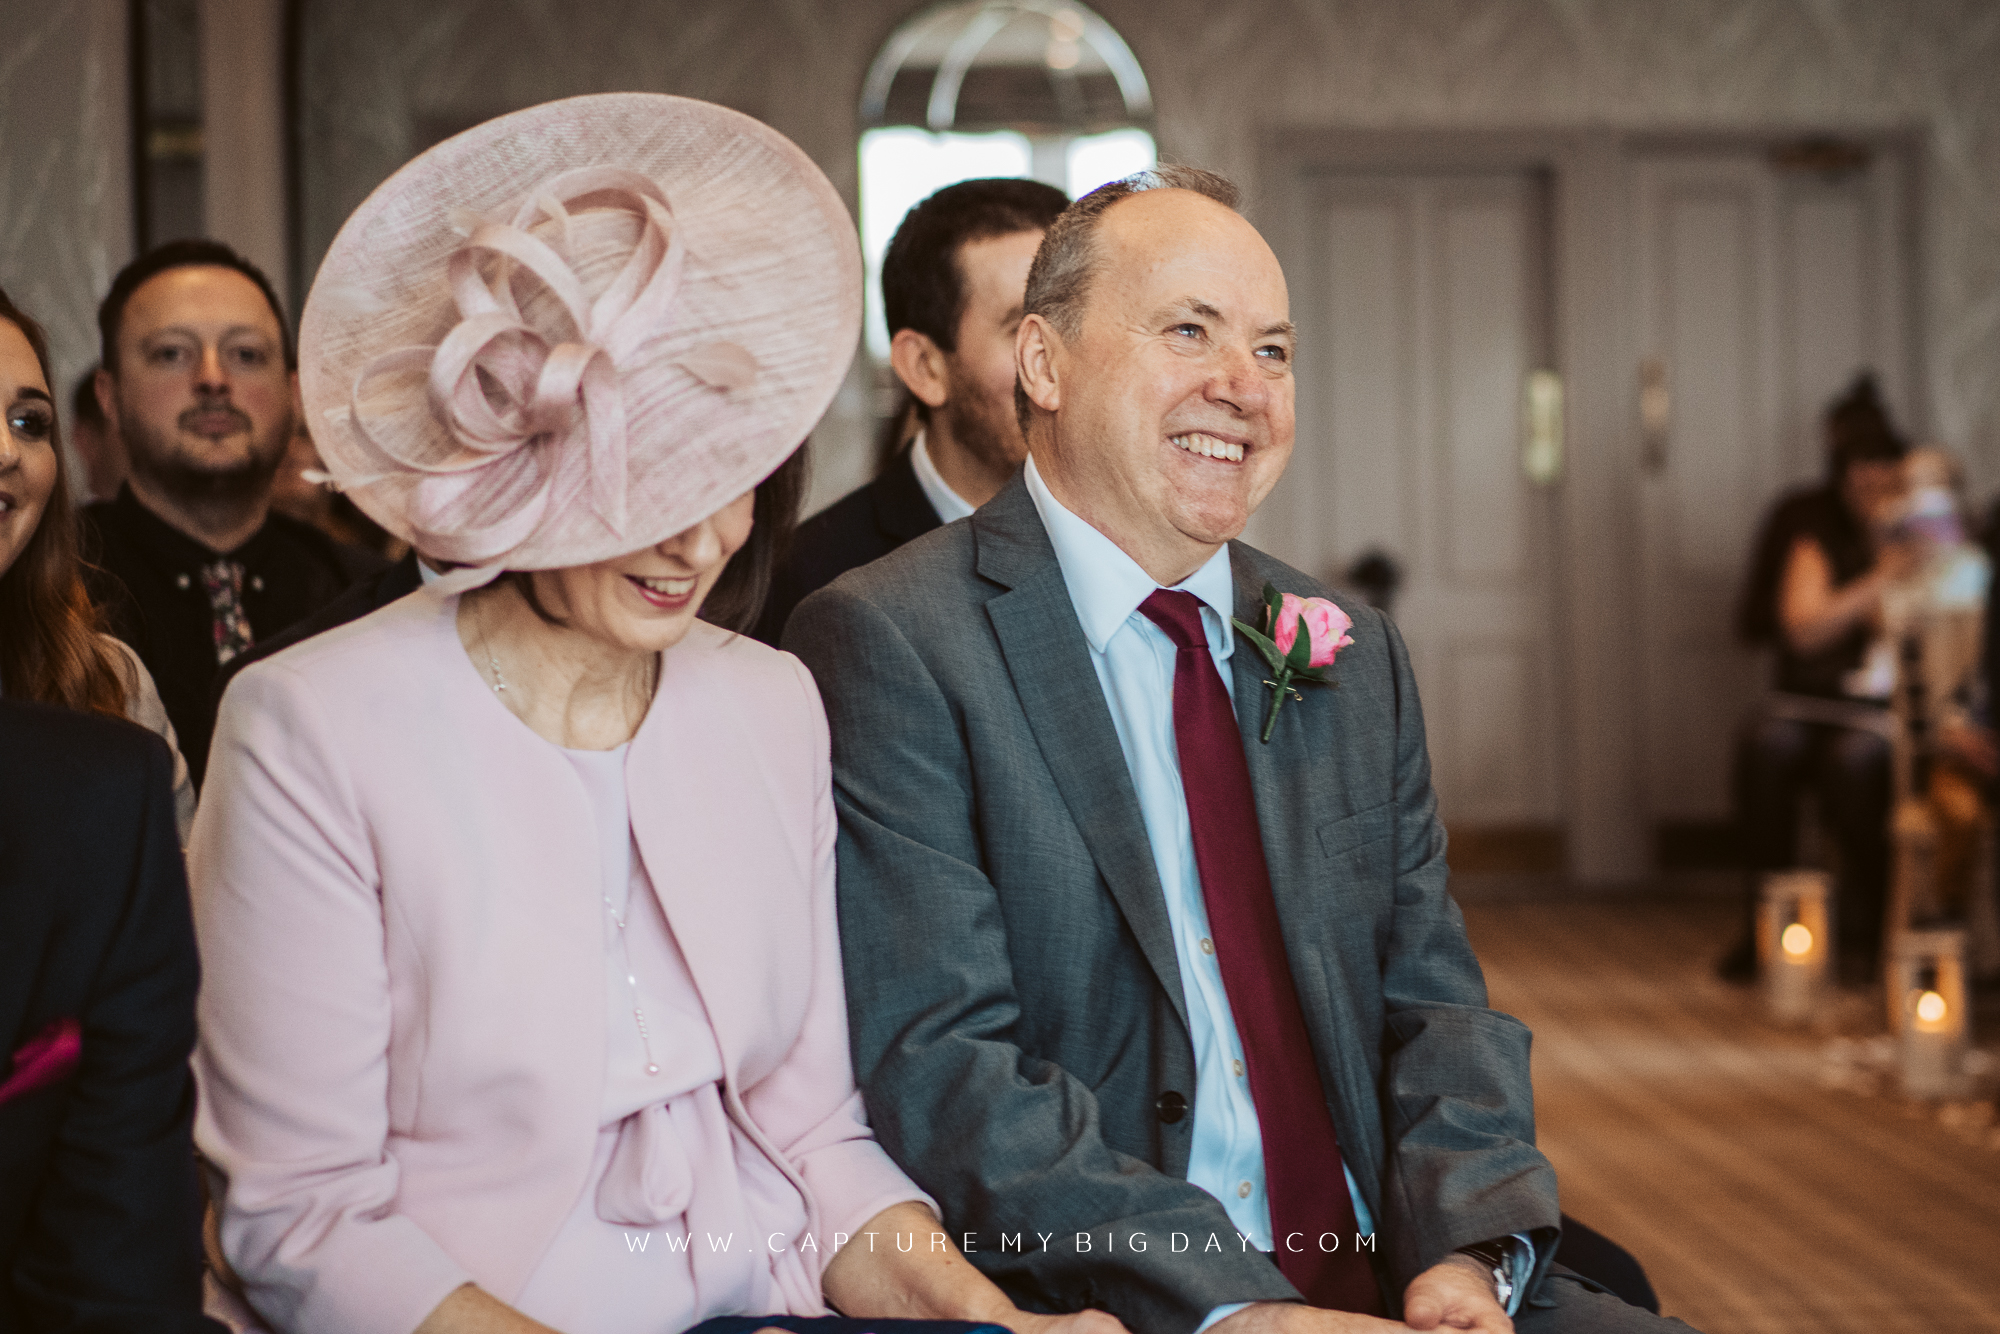 Father of the bride smiling next to mother of the bride